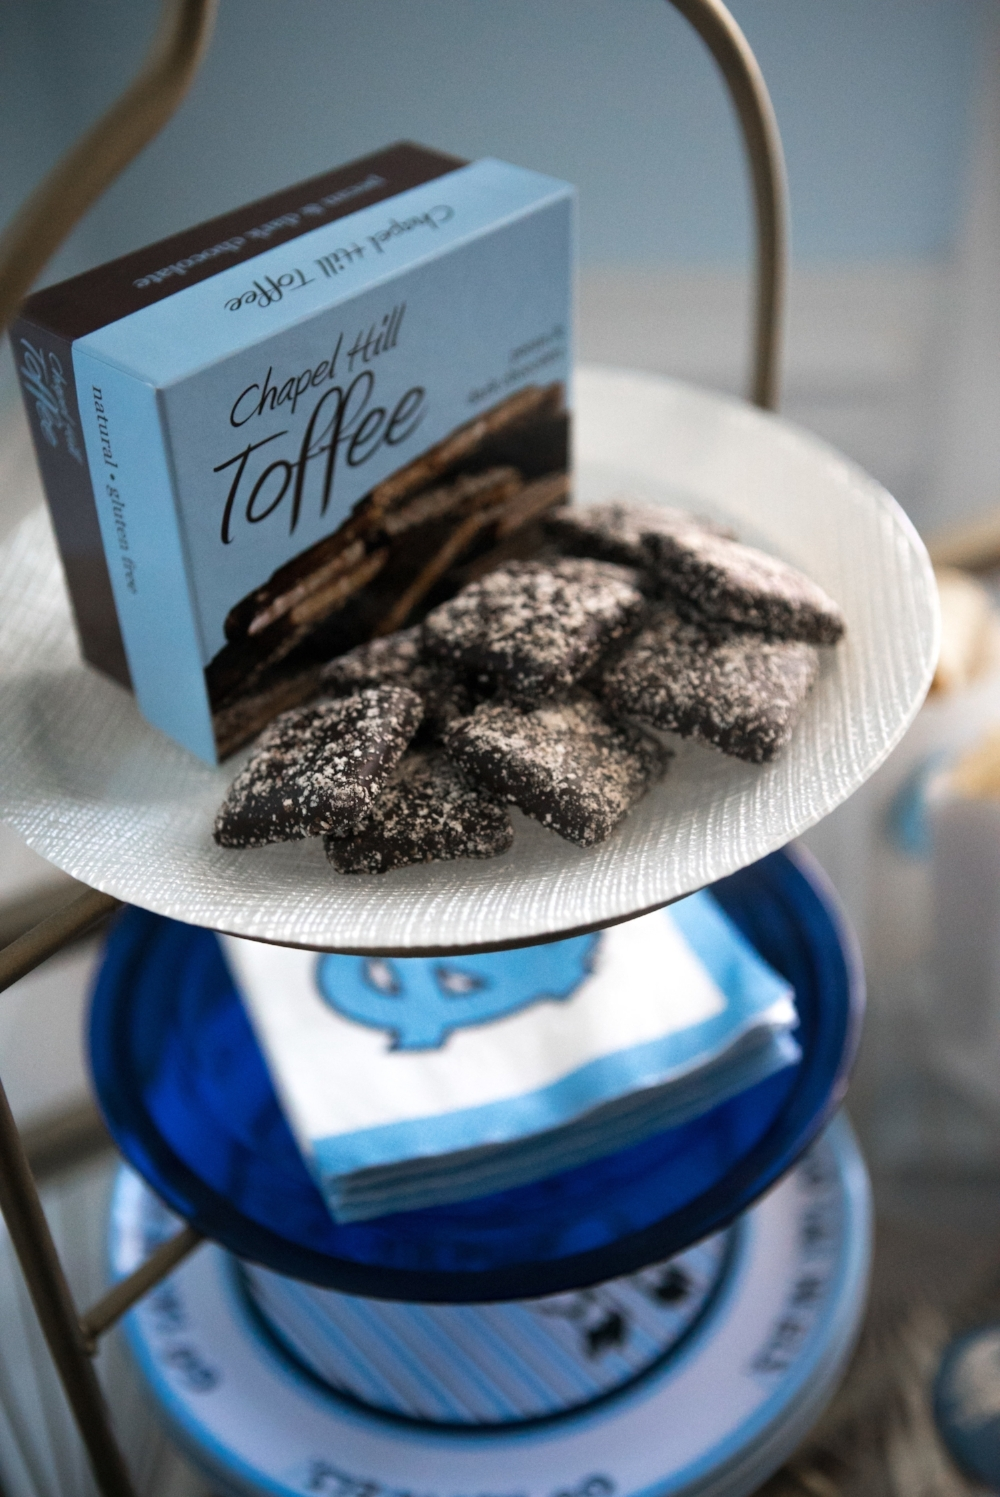 Chapel Hill Toffee is delicious!